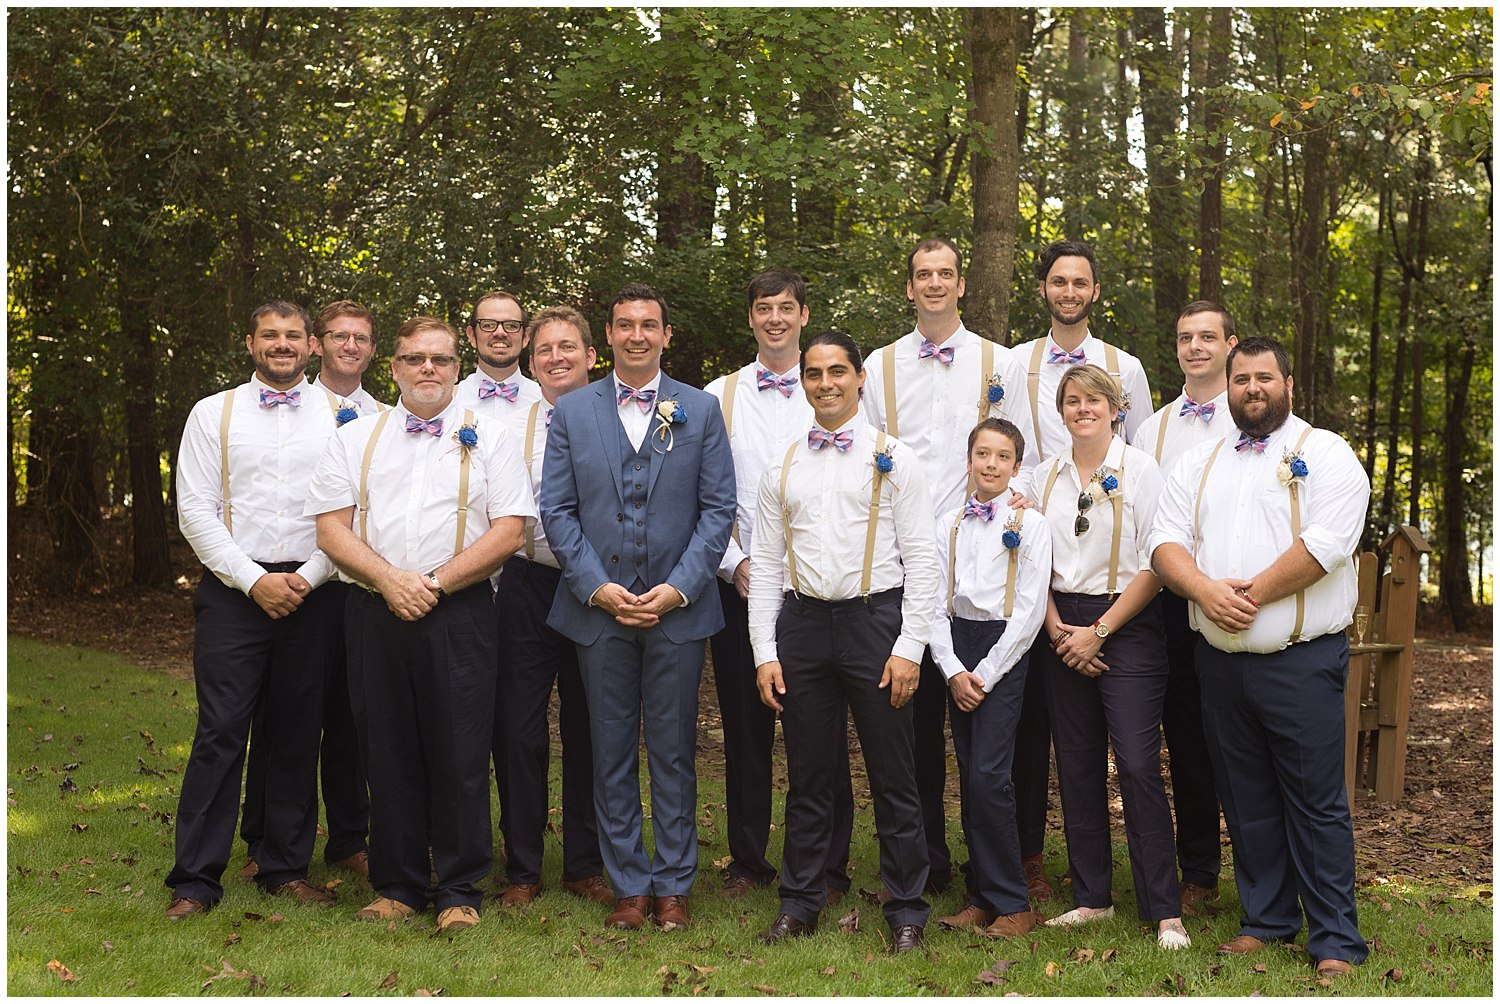 large group of groomsmen with bowties and suspenders